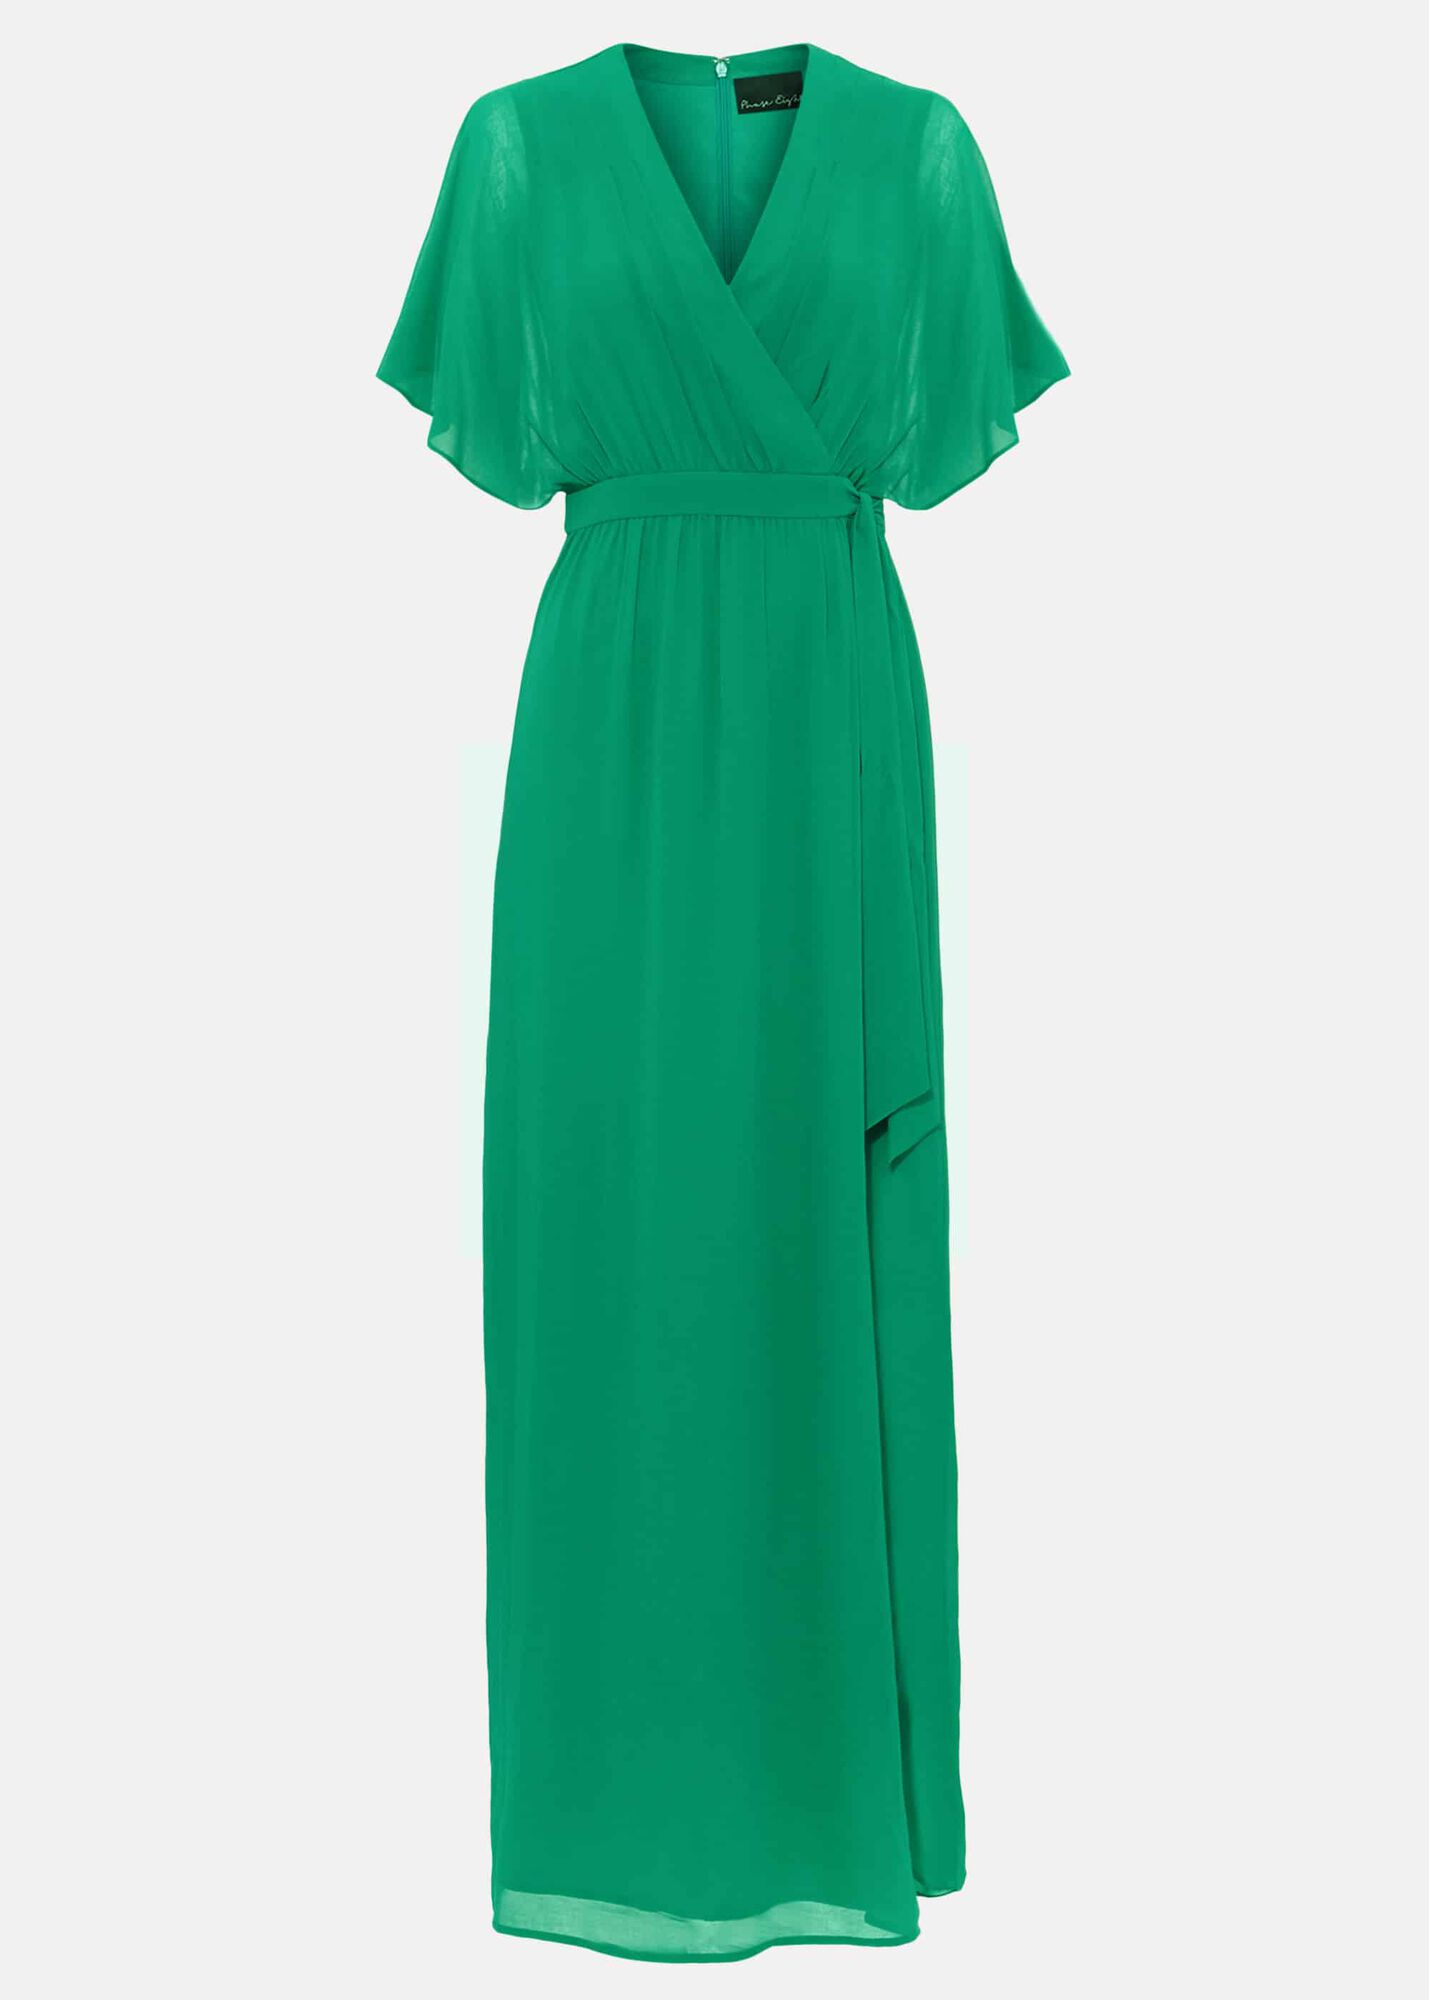 78a0b671a6 Hyria Chiffon Maxi Dress | Phase Eight | Phase Eight